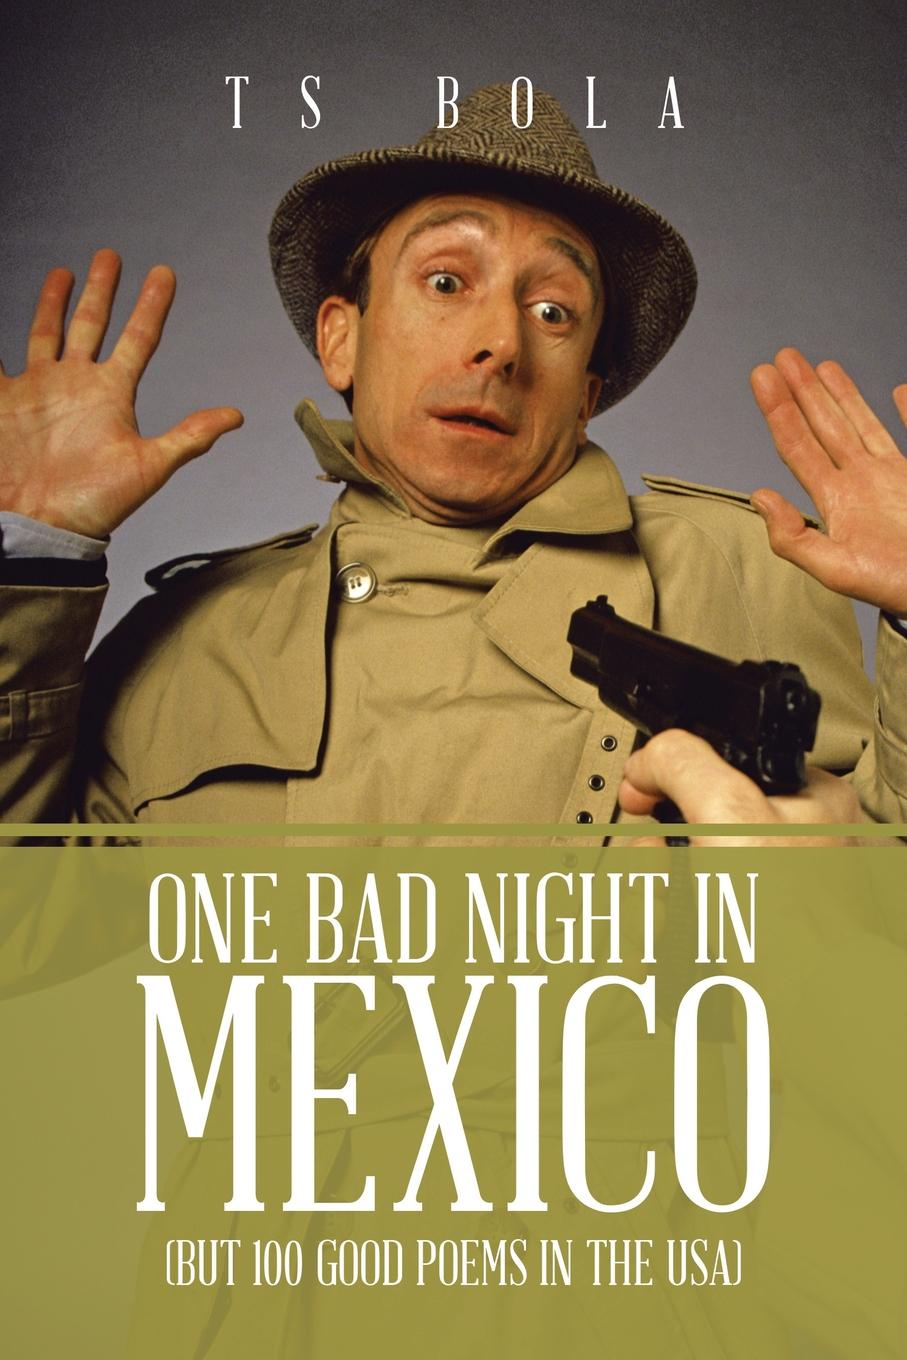 Ts Bola One Bad Night in Mexico. (But 100 Good Poems in the USA) цены